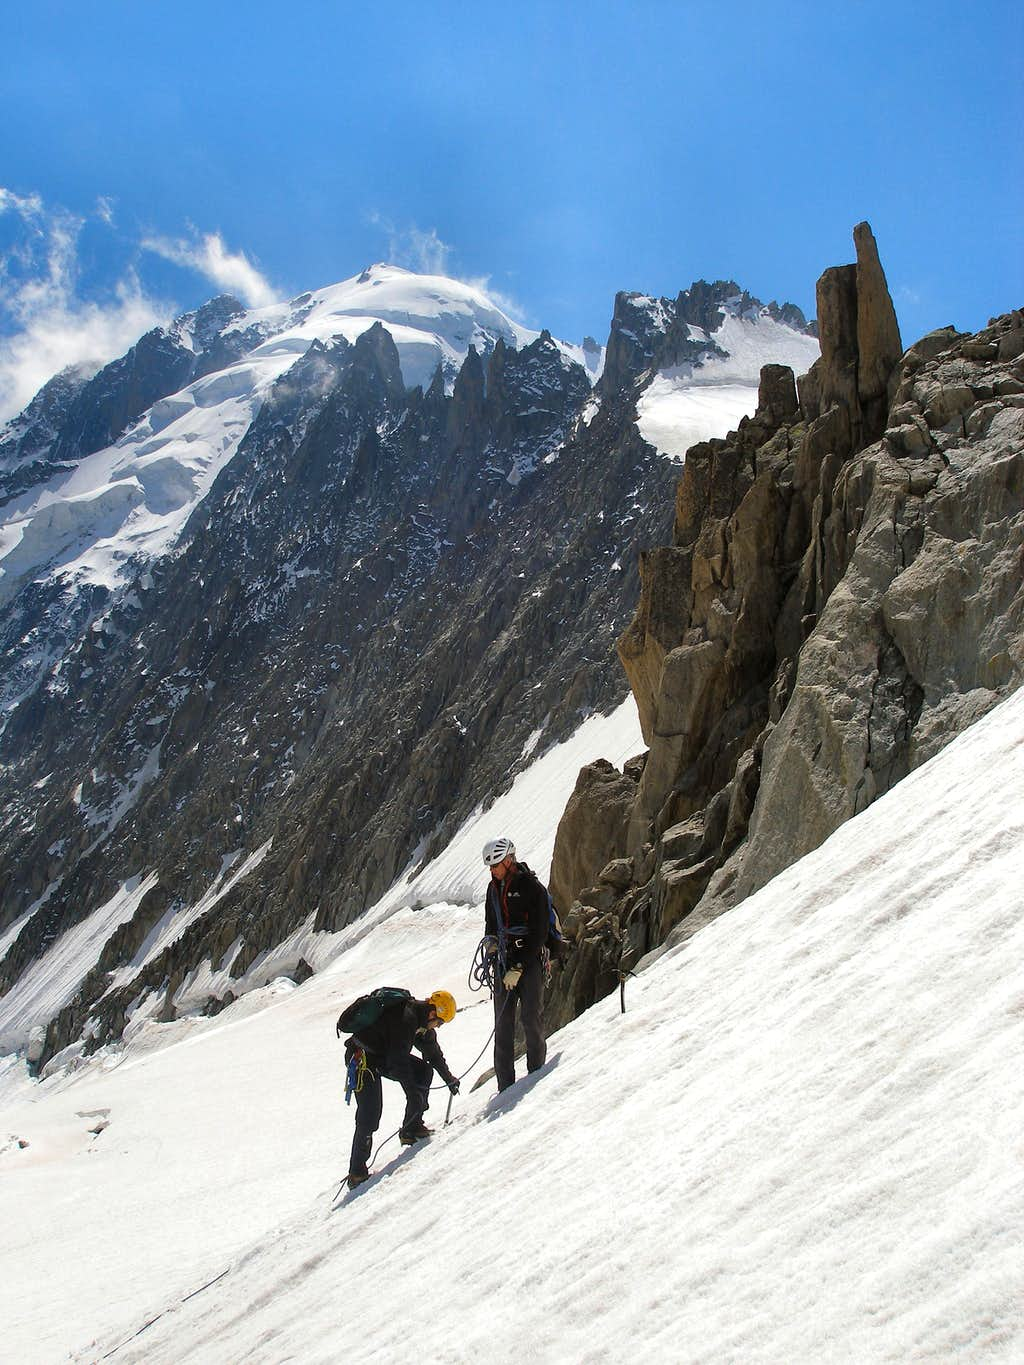 Andy and Phil on the Aiguille des Grands Montets